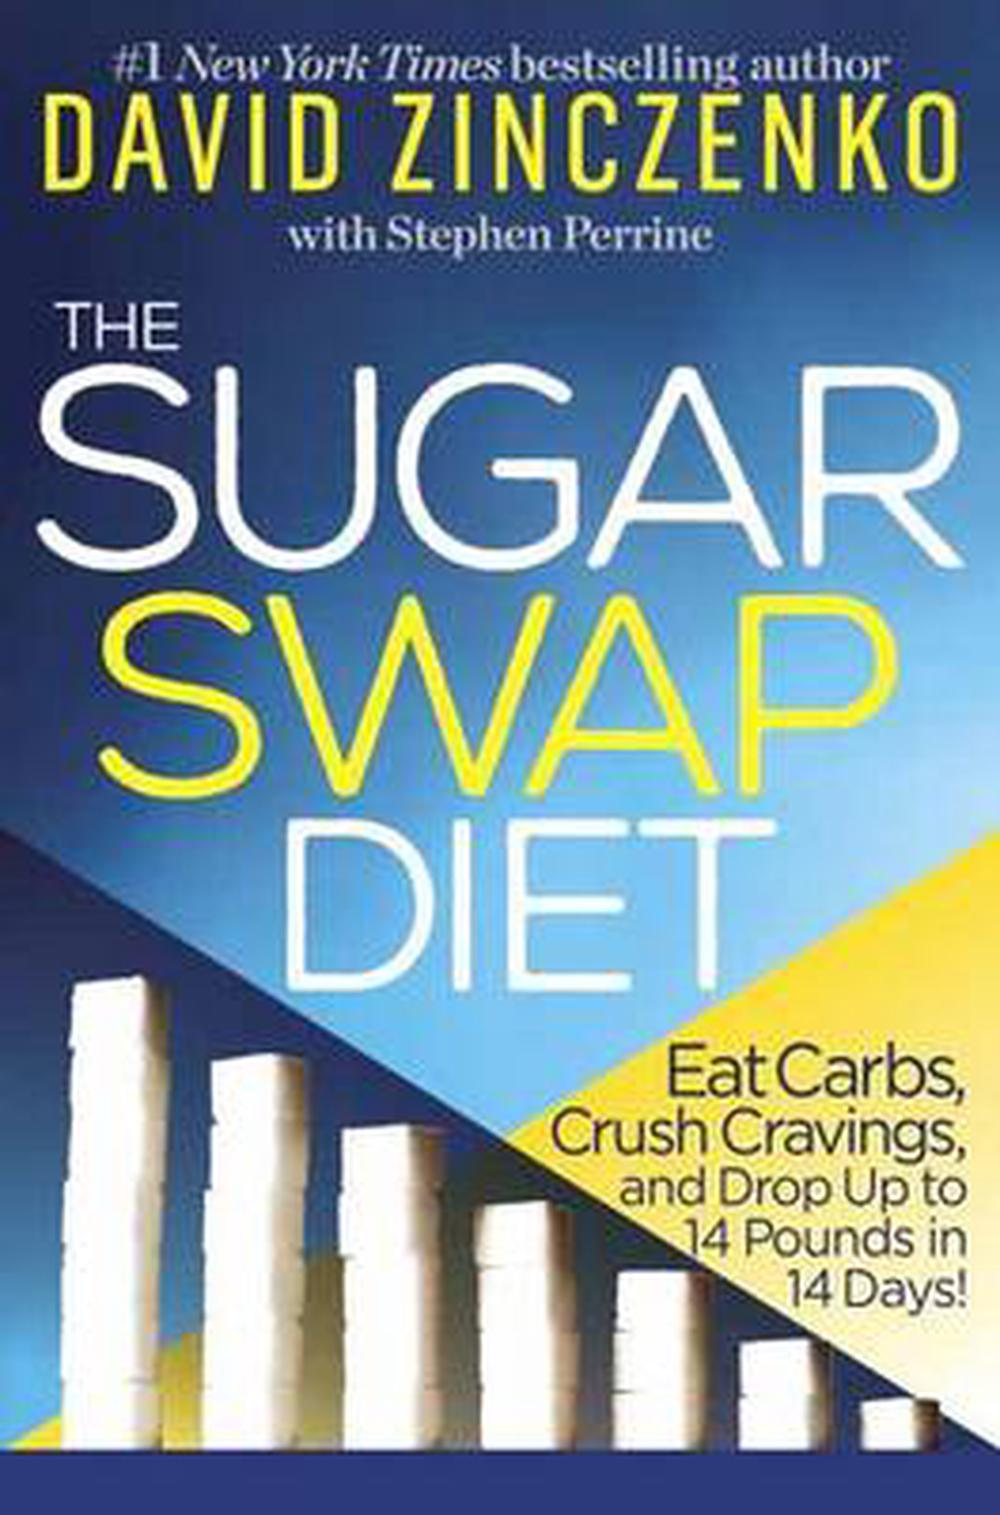 The Sugar Swap Diet: Eat Carbs, Crush Cravings, and Drop Up to 14 Pounds in 14 Days!